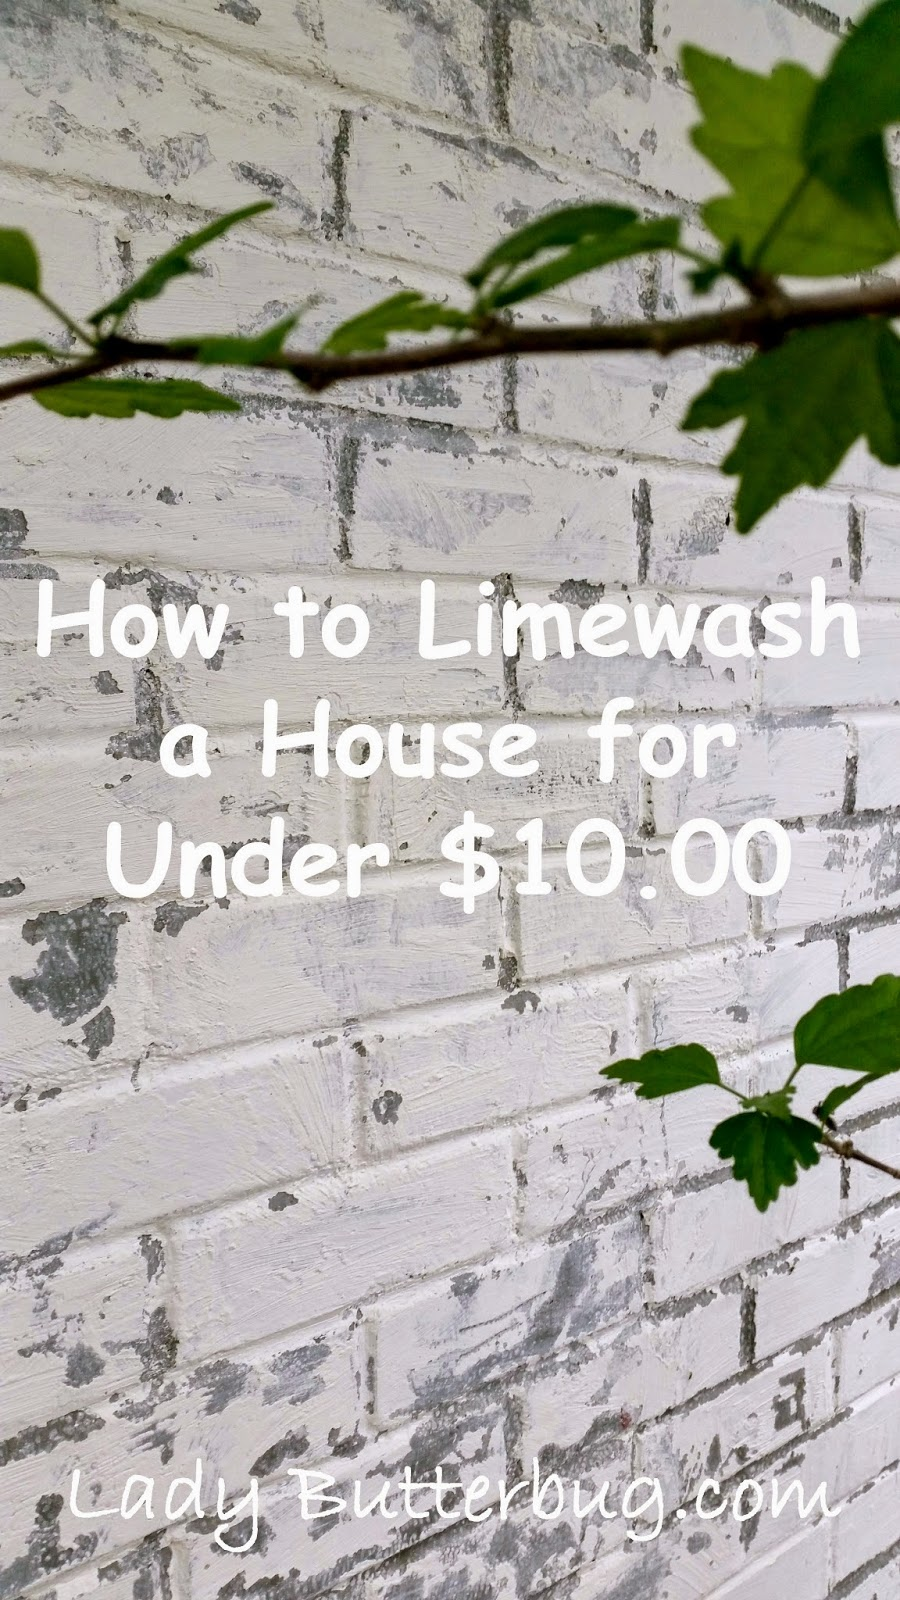 Limewash for Less Than $10.00